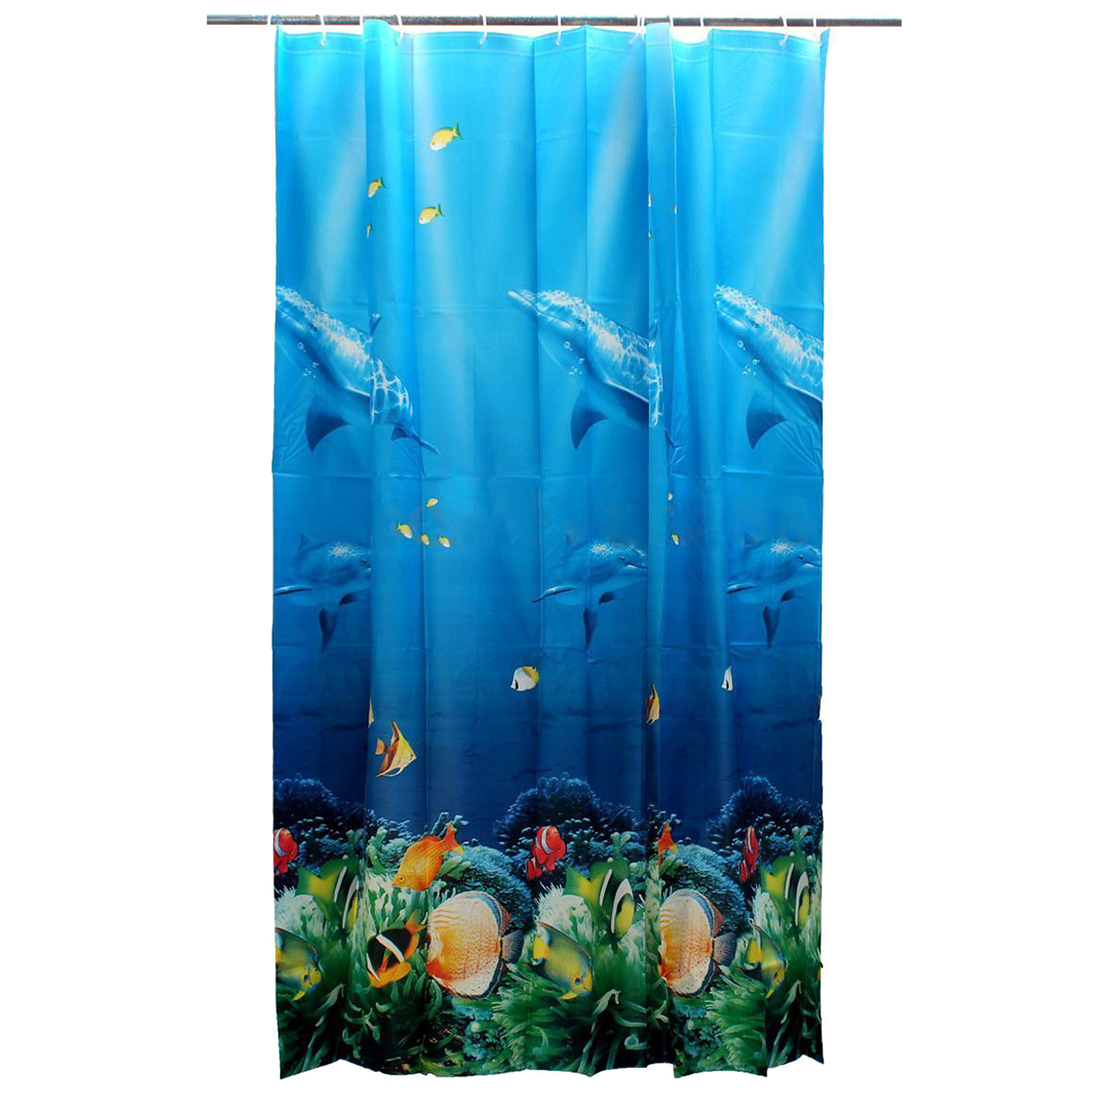 Clear fish shower curtain - Szs Hot 180x180cm Tropical Beach Sea Dolphin Fish Ocean Color Shower Curtain With Hooks